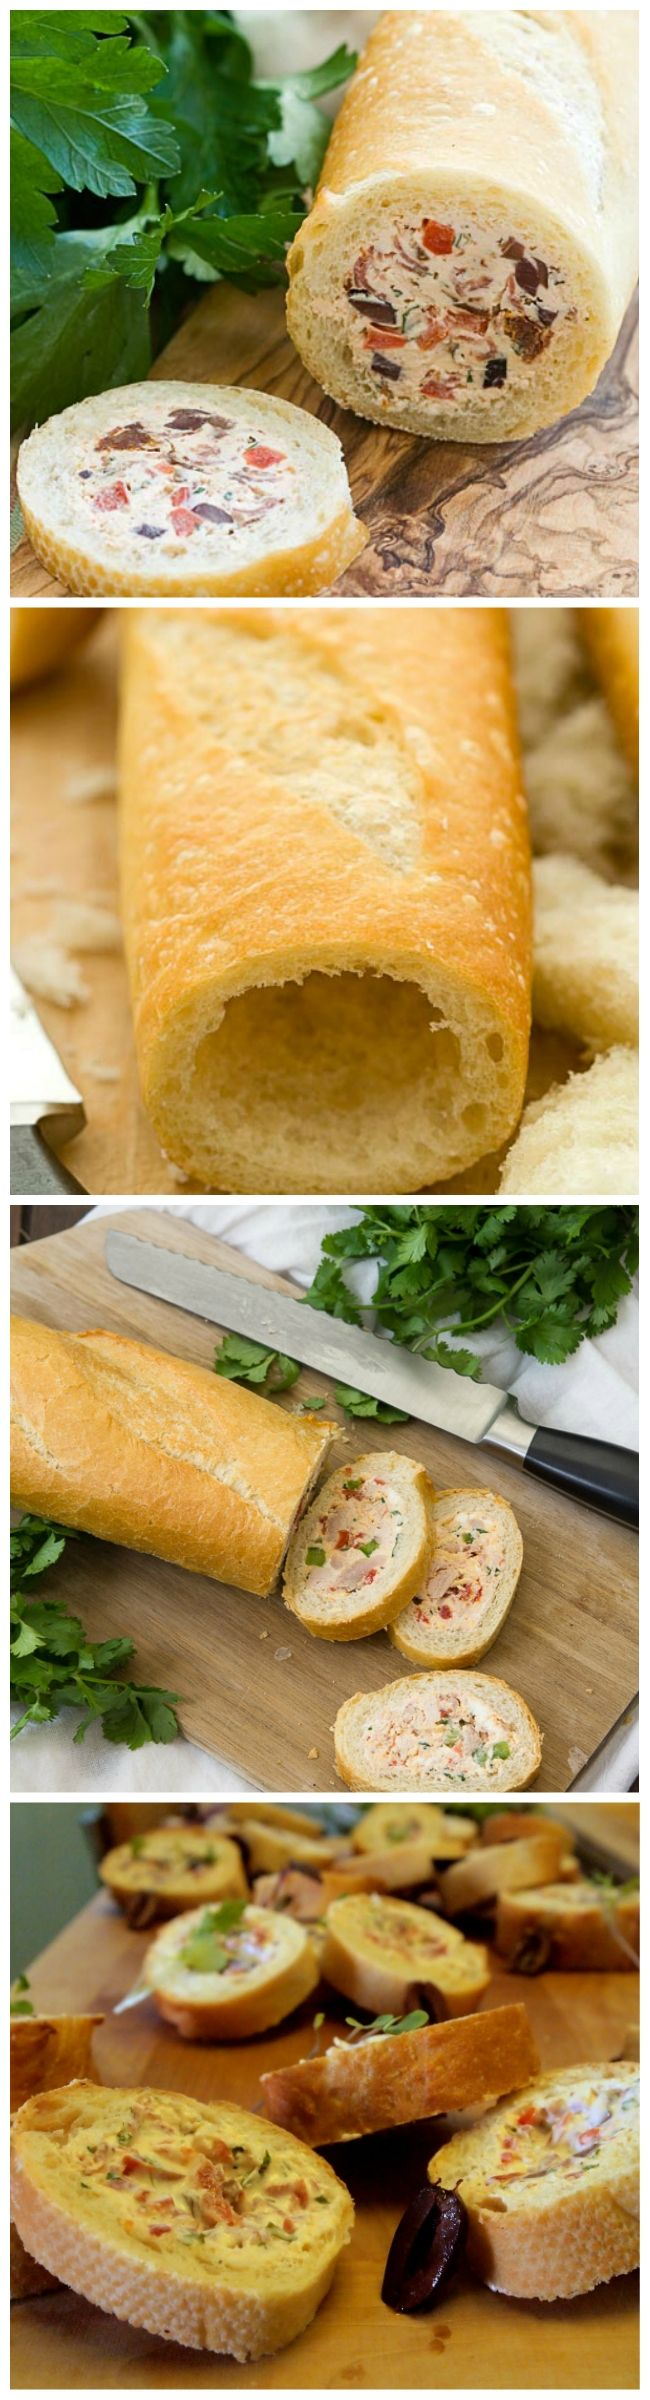 Stuffed Baguette Recipe SUPER IDEE A RÉALISER VERSION VEGETARIENNE